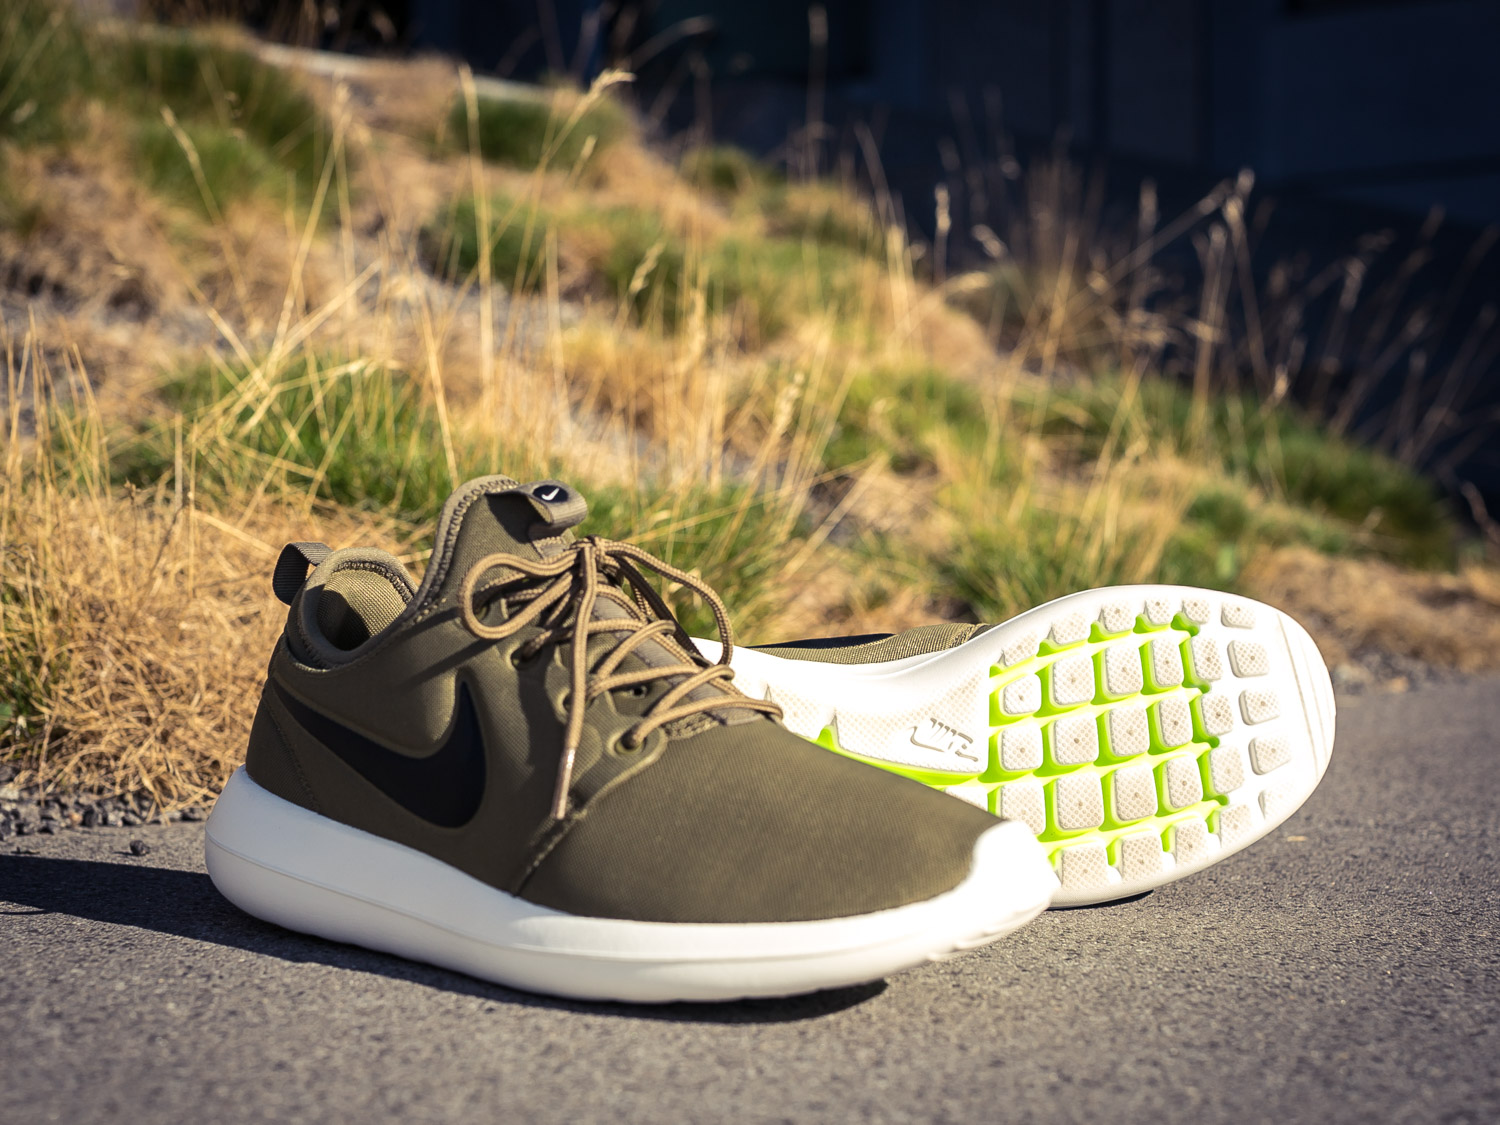 finest selection 9cef5 e7319 Nike W ROSHE TWO FLYKNIT 365 861706 001 Sivasdescalzo